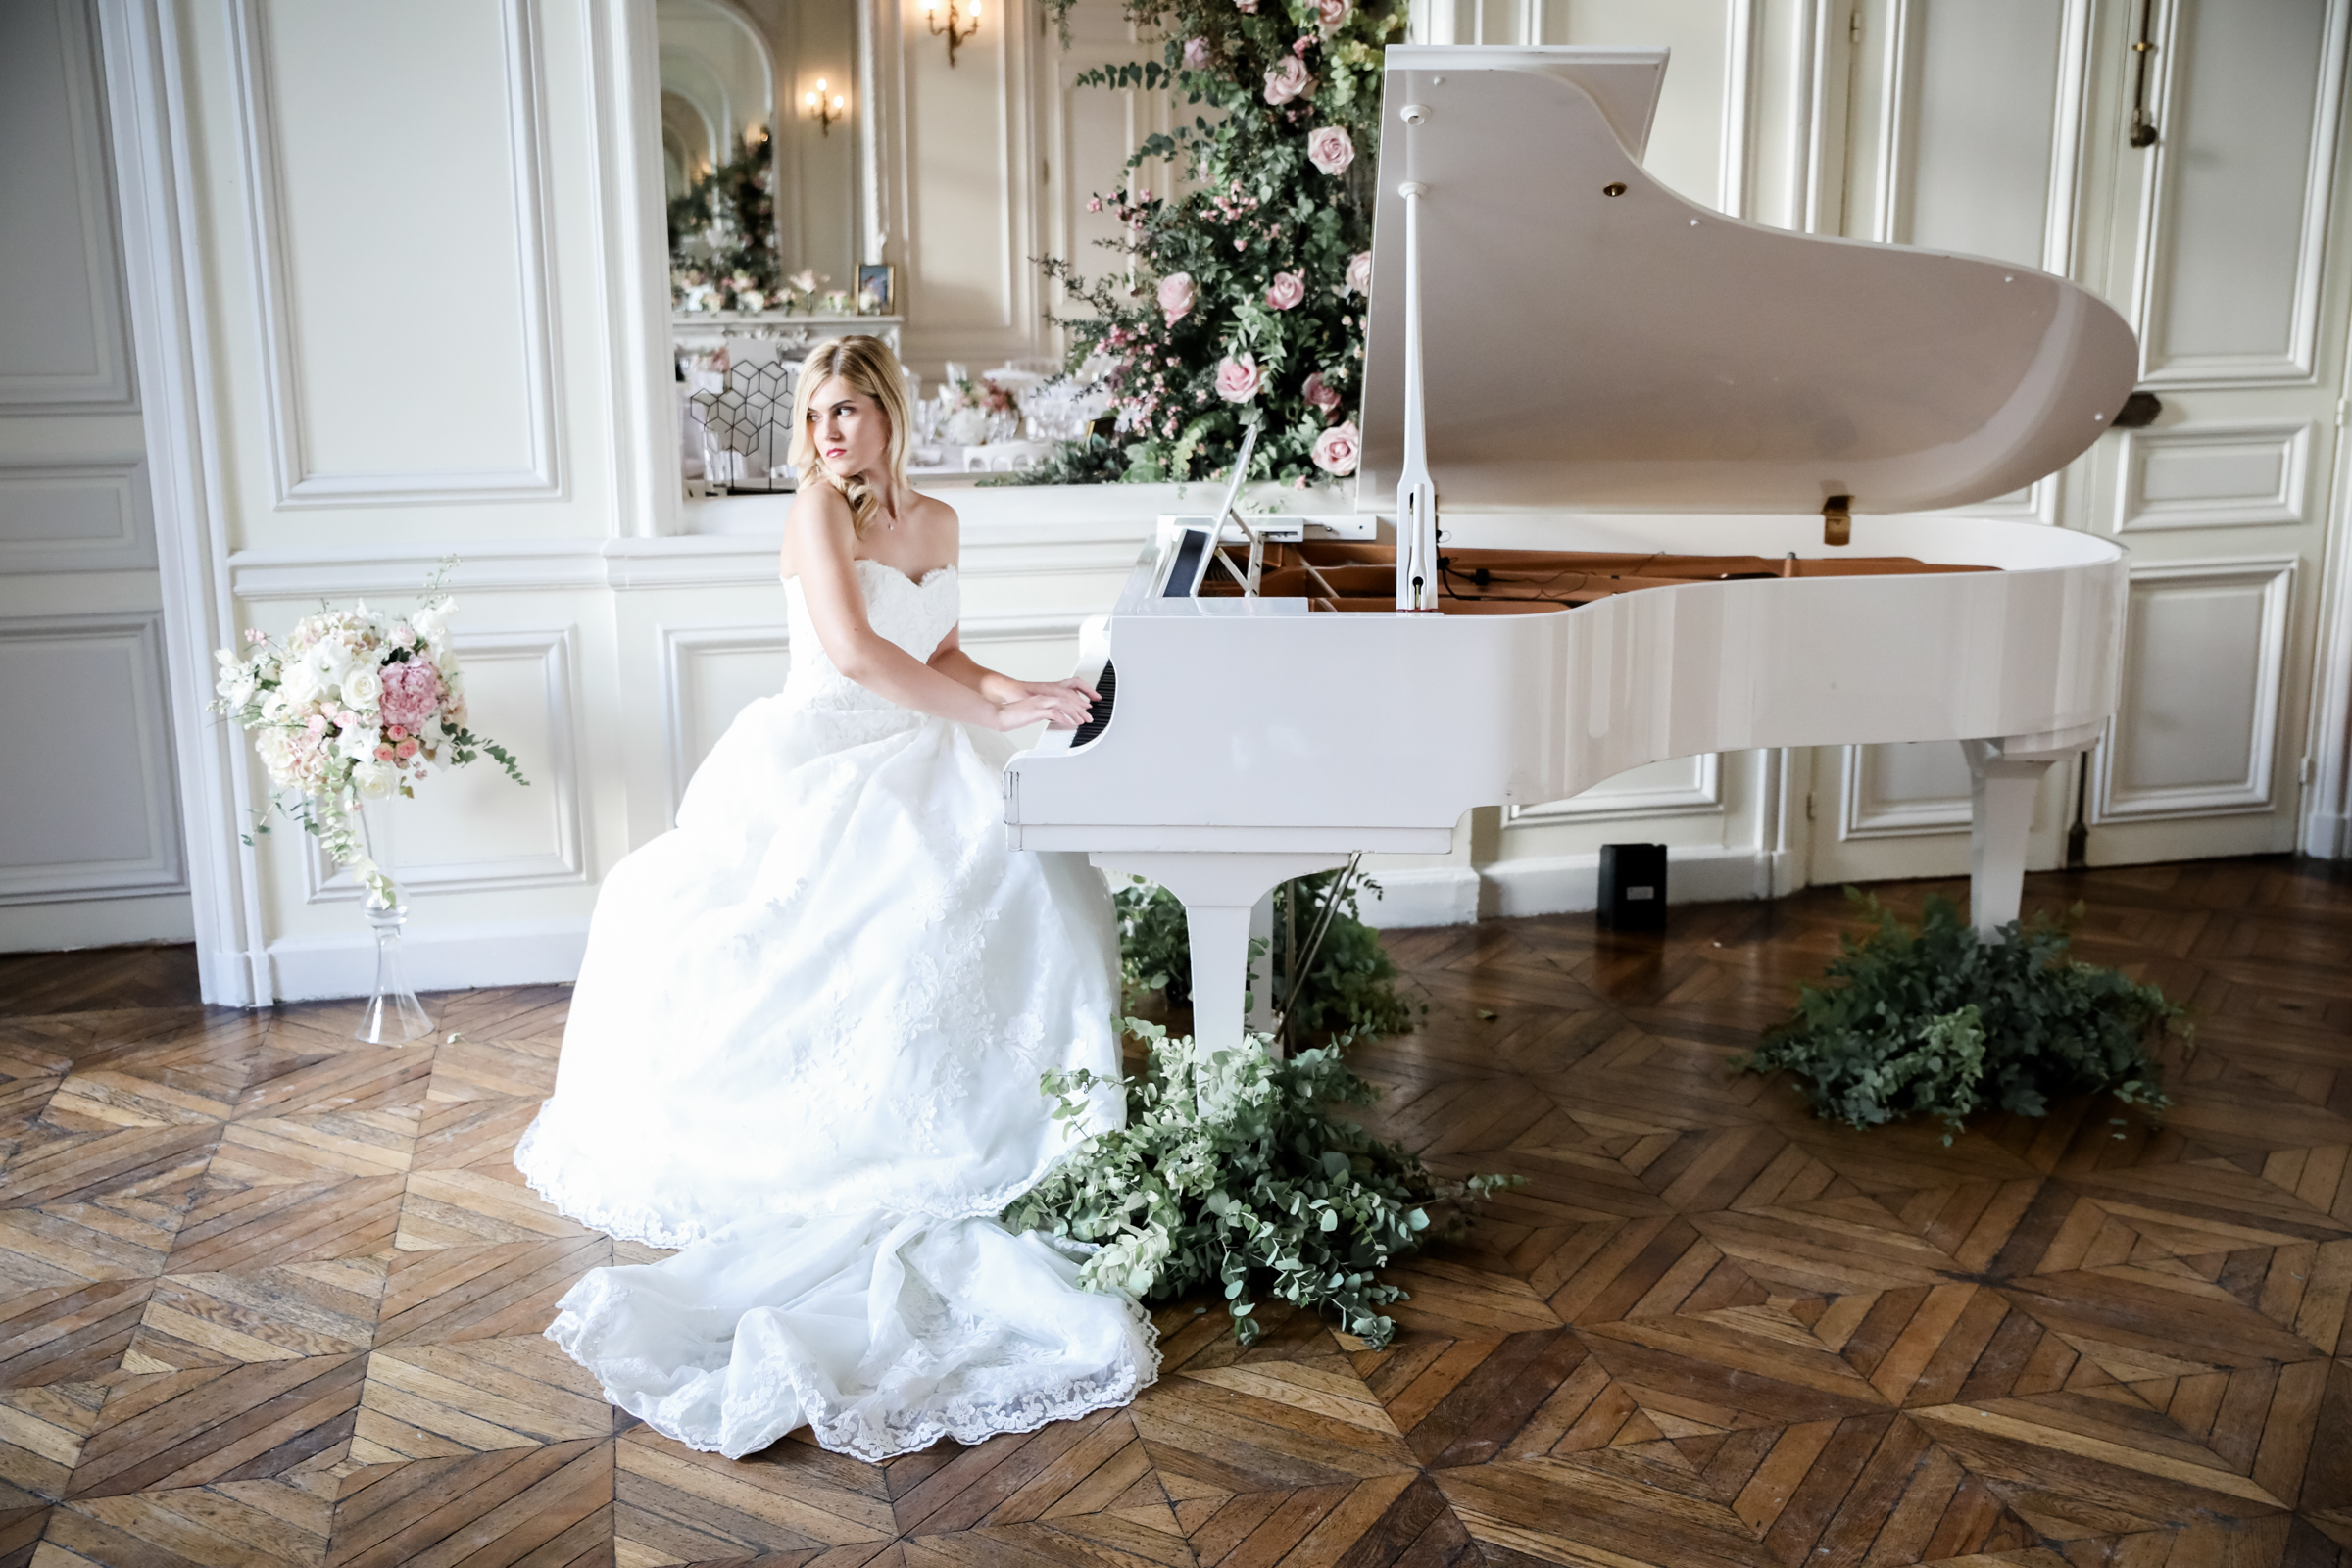 Bride at white grand piano- photo by Julien Laurent-Georges